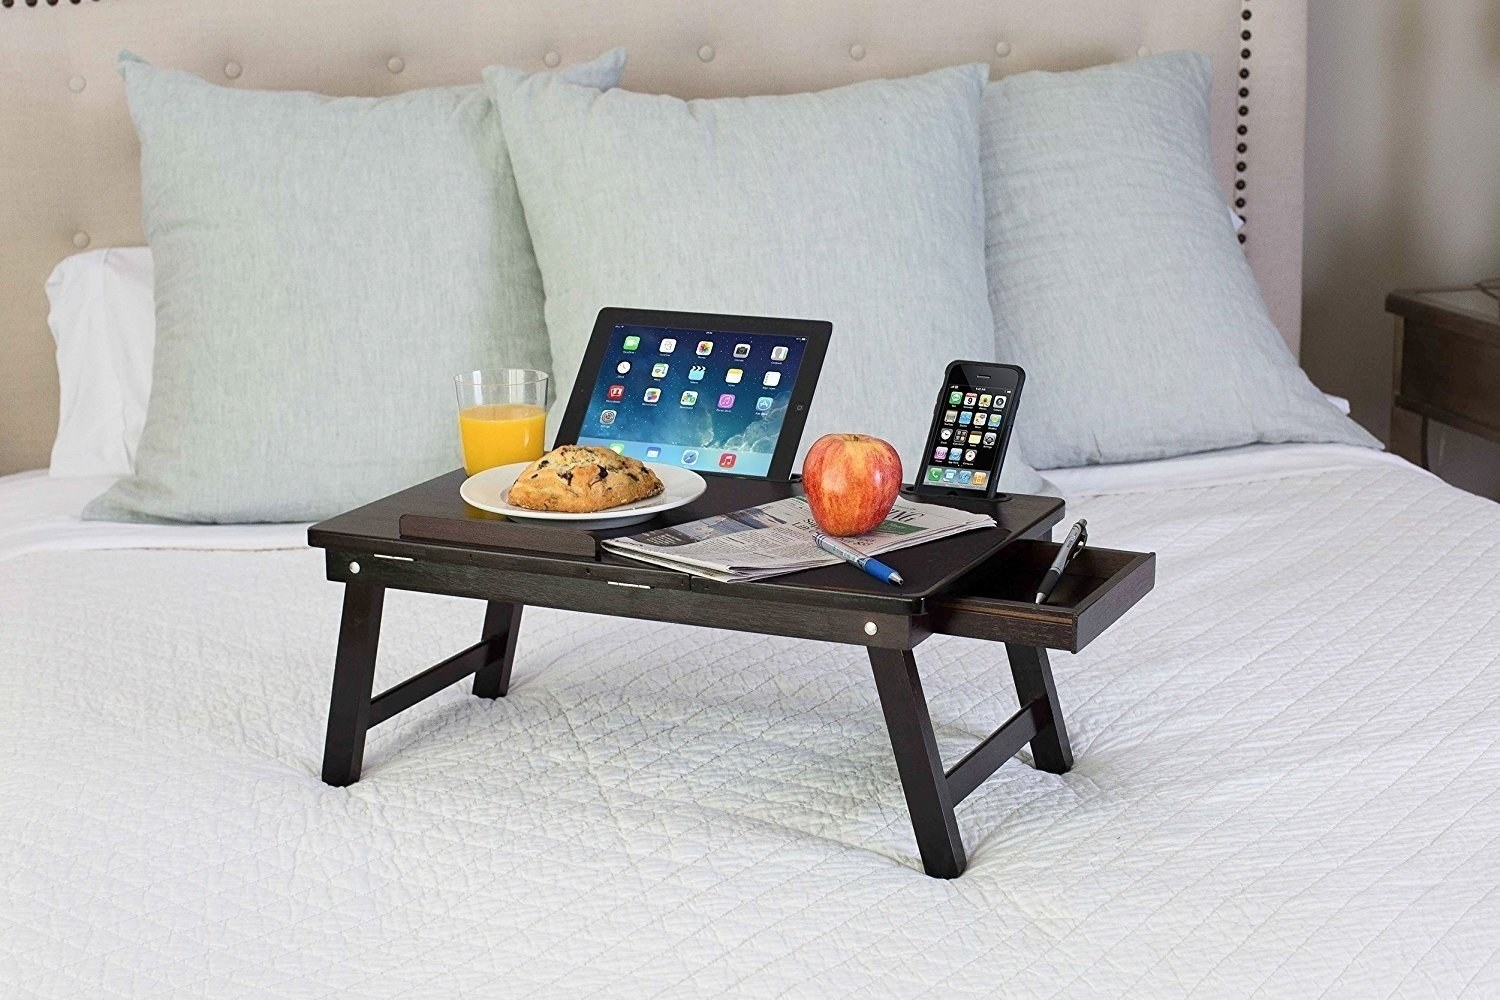 The bed tray holding a tablet, juice, phone, notepad, and more